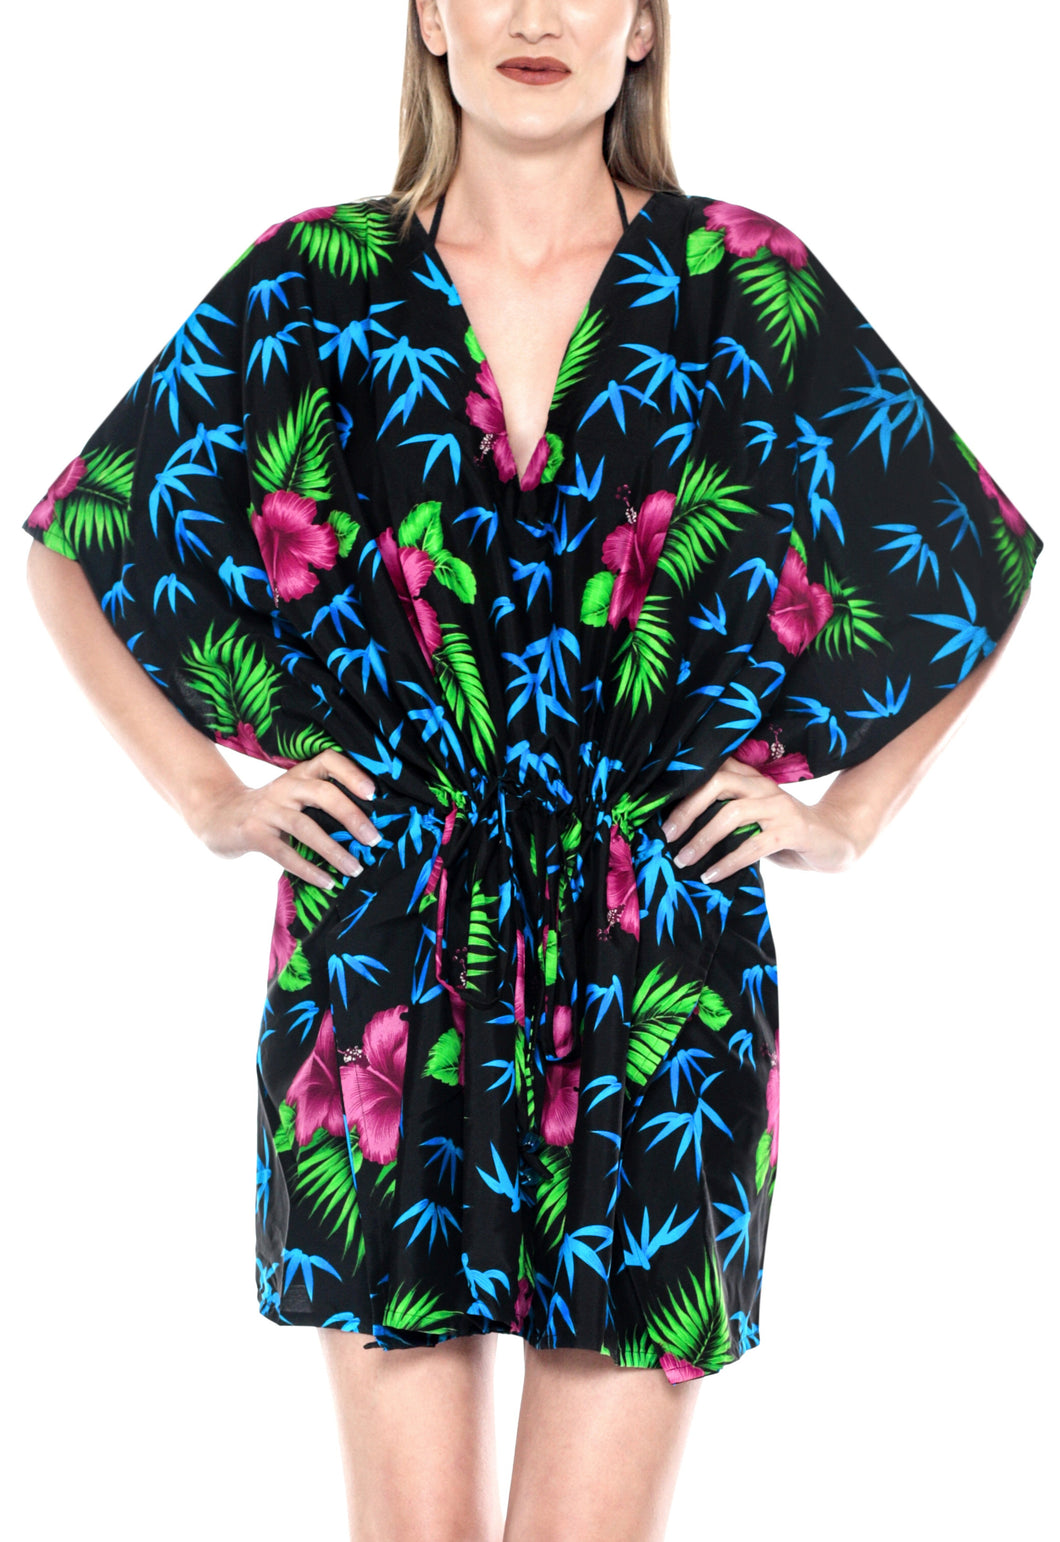 la-leela-bikni-swimwear-cover-ups-likre-printed-sheer-bathingsuit-kaftan-caftan-bohemian-tunic-cardigan-work-lightweight-black